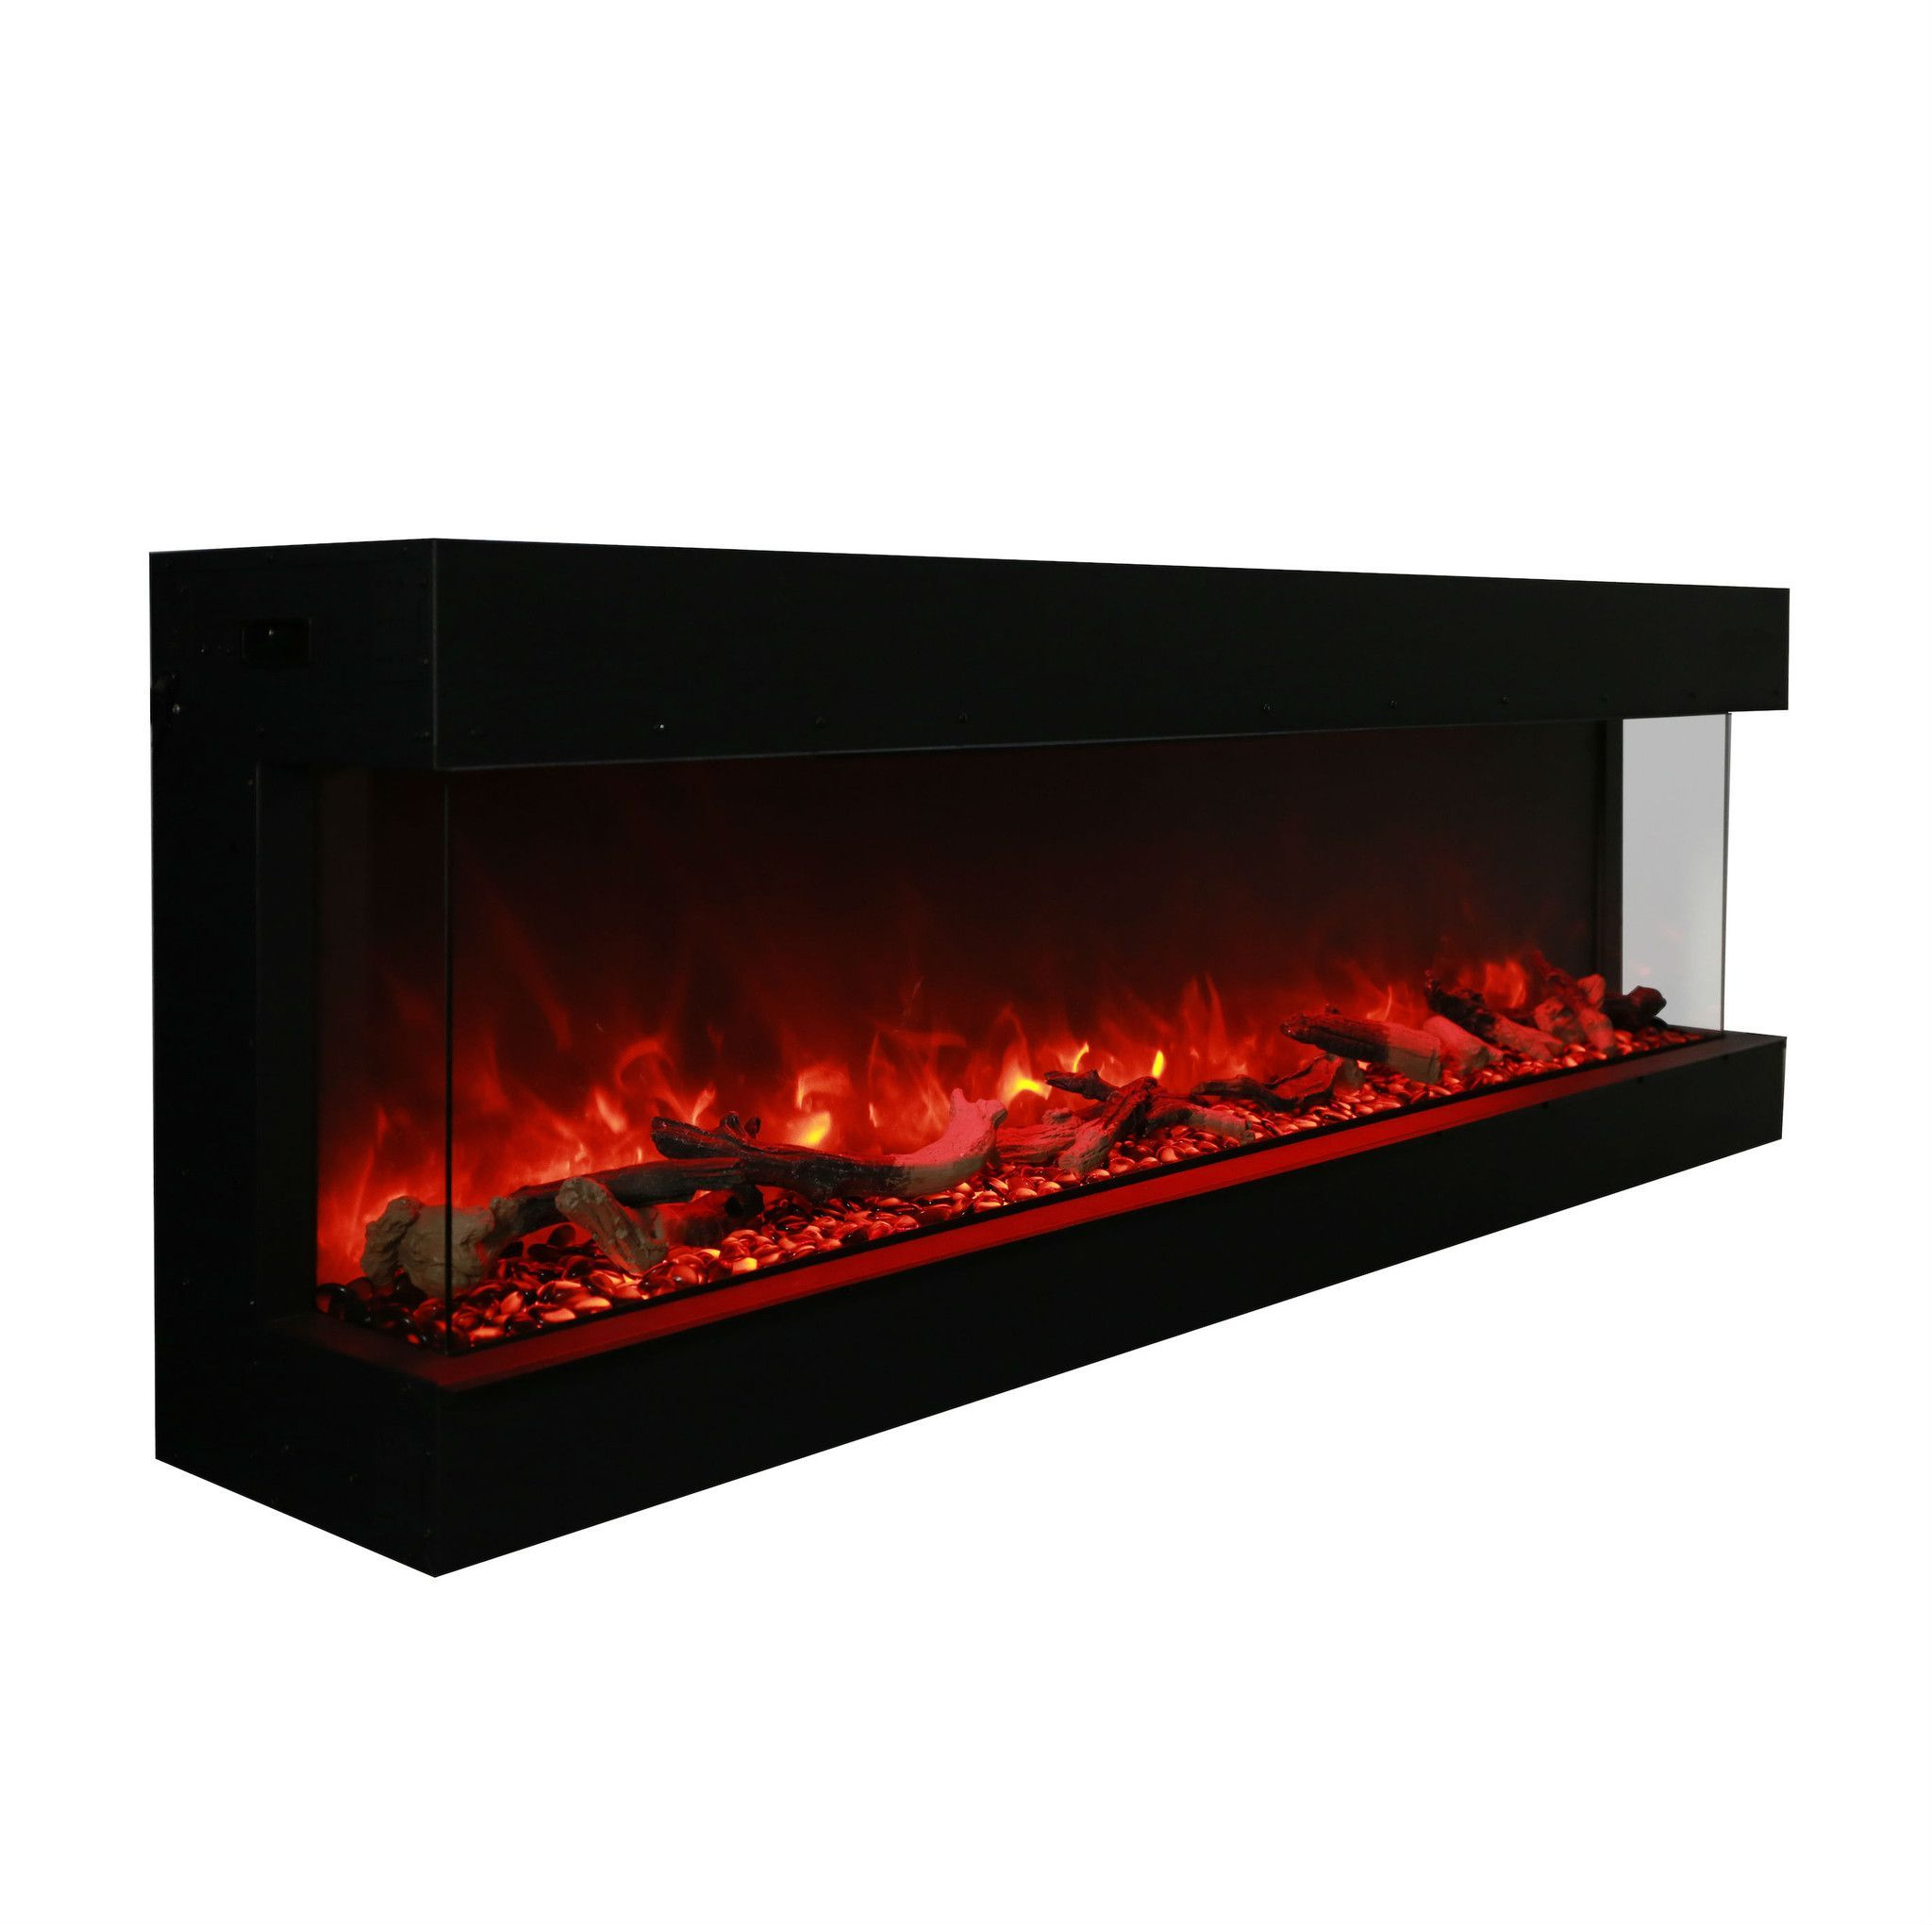 lit special burner waves starting pit at fireglass includes steel stainless ornaments accessories fireplace fire